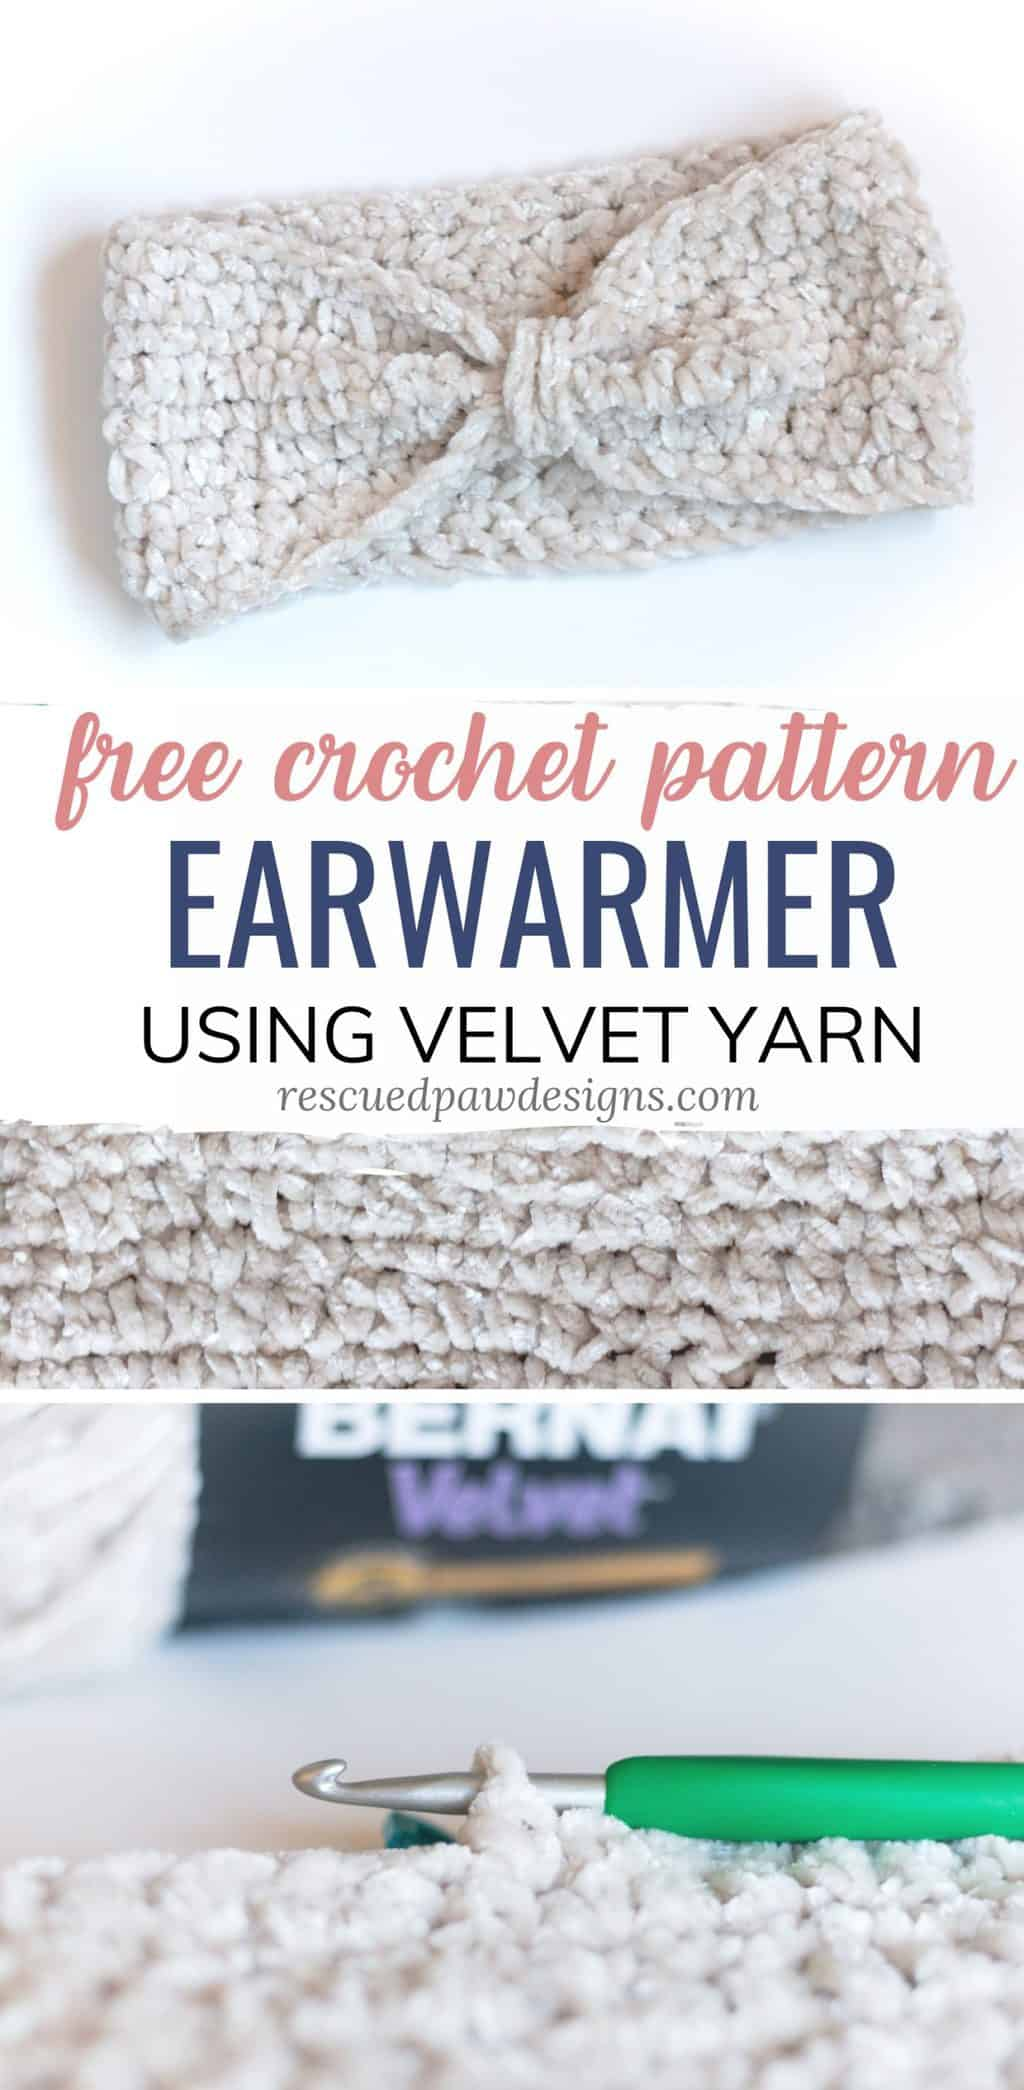 Velvet Yarn Crochet headband Pattern